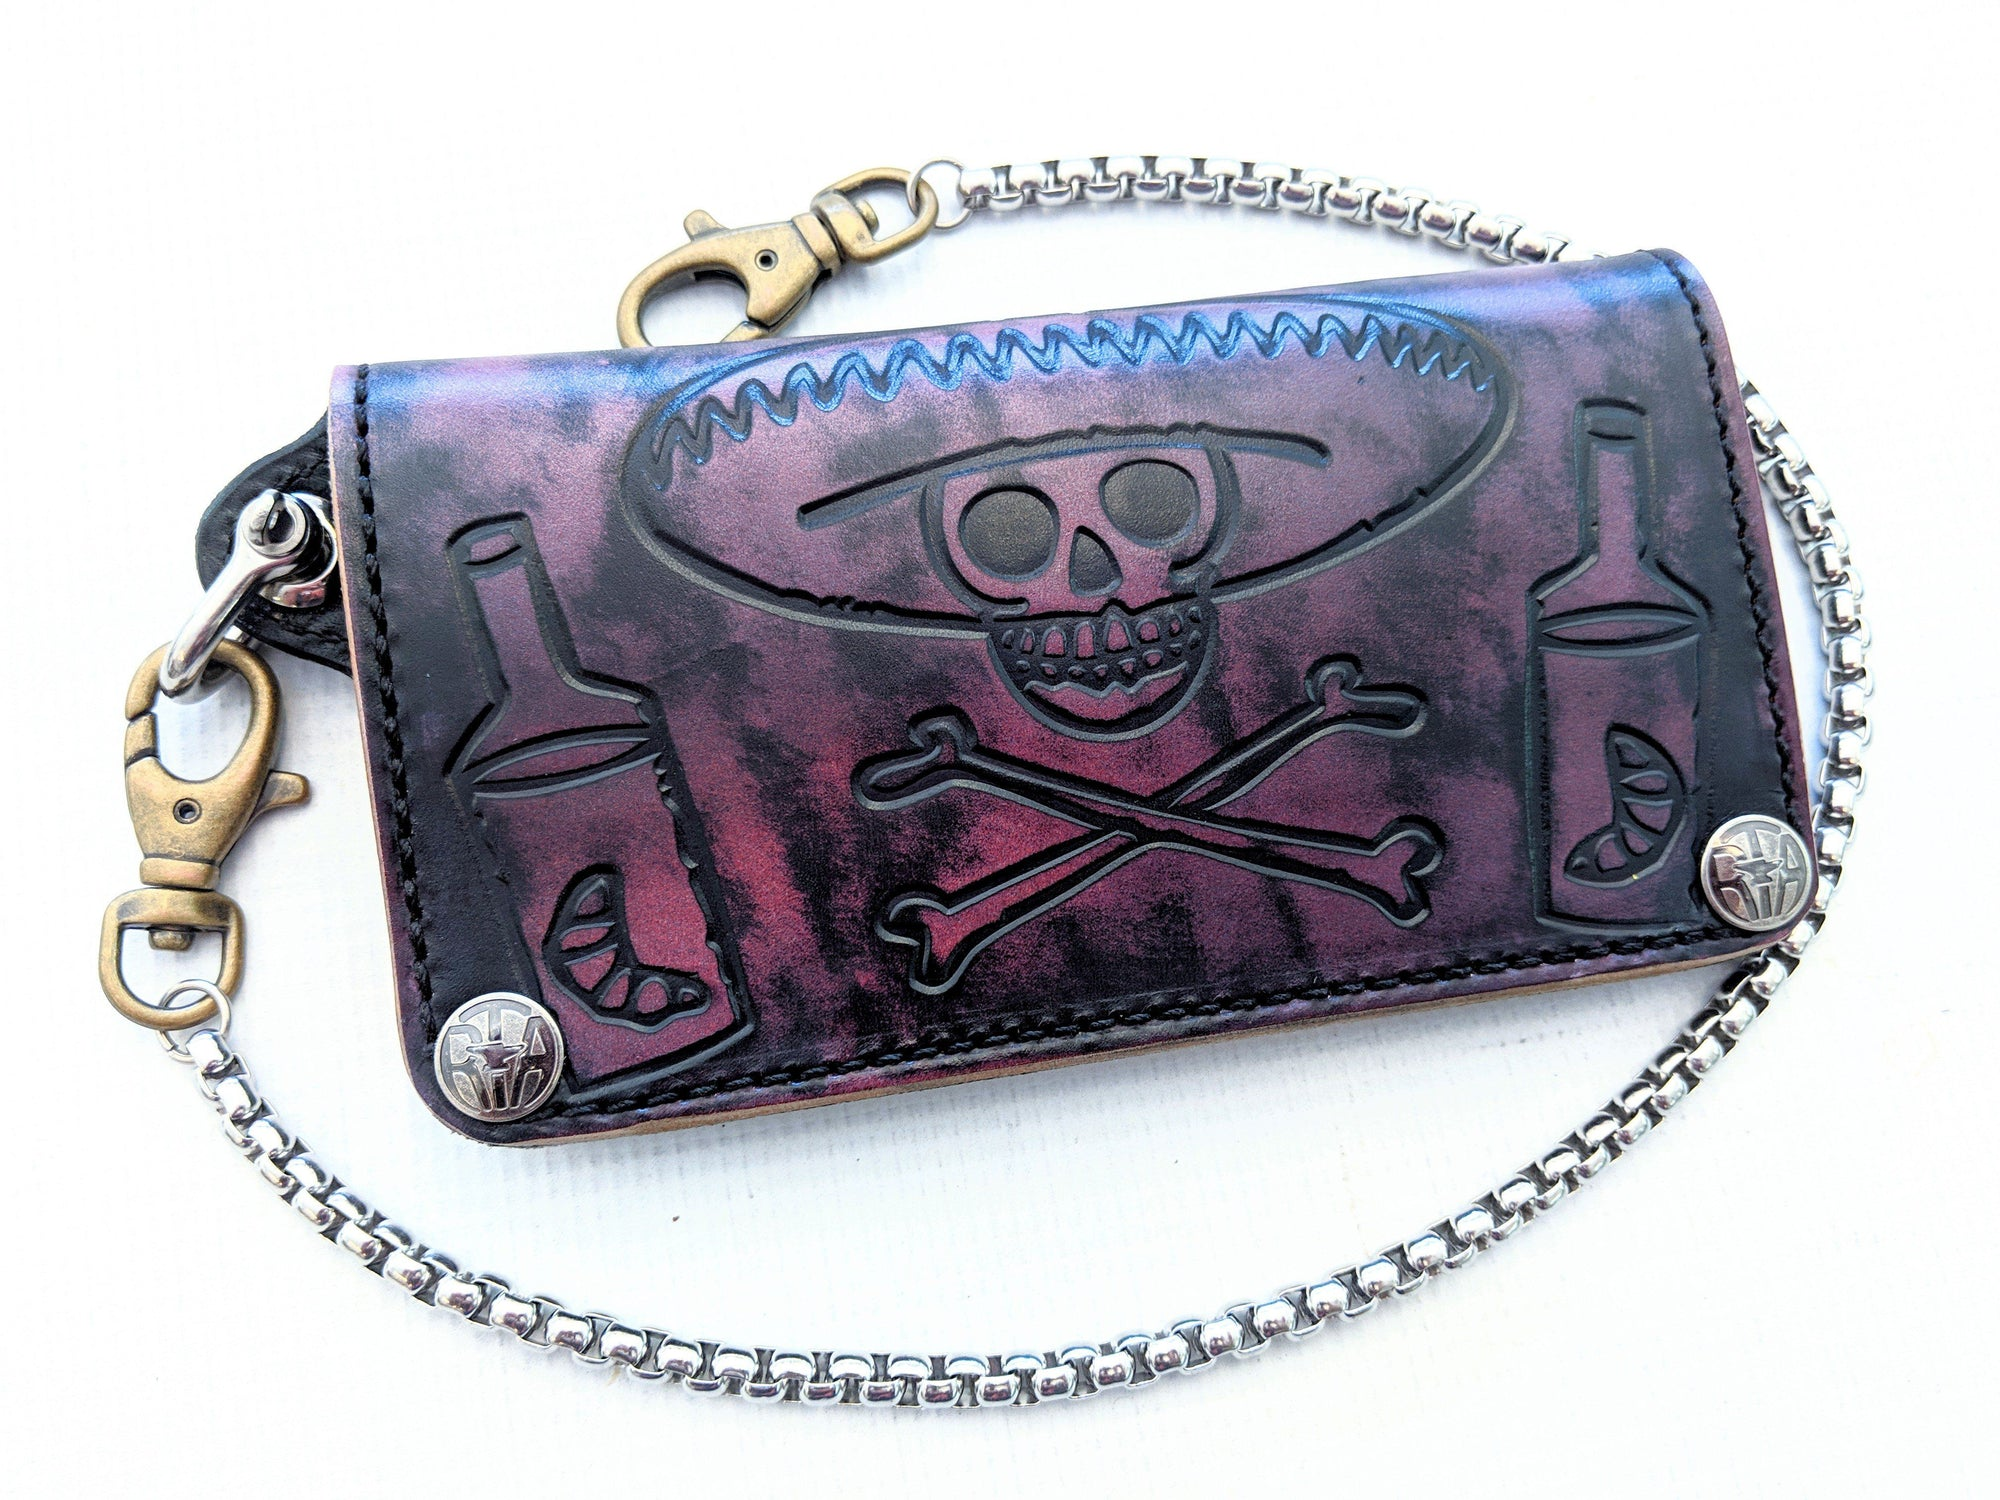 Long Biker Leather Chain Wallet - Violeta - Anvil Customs